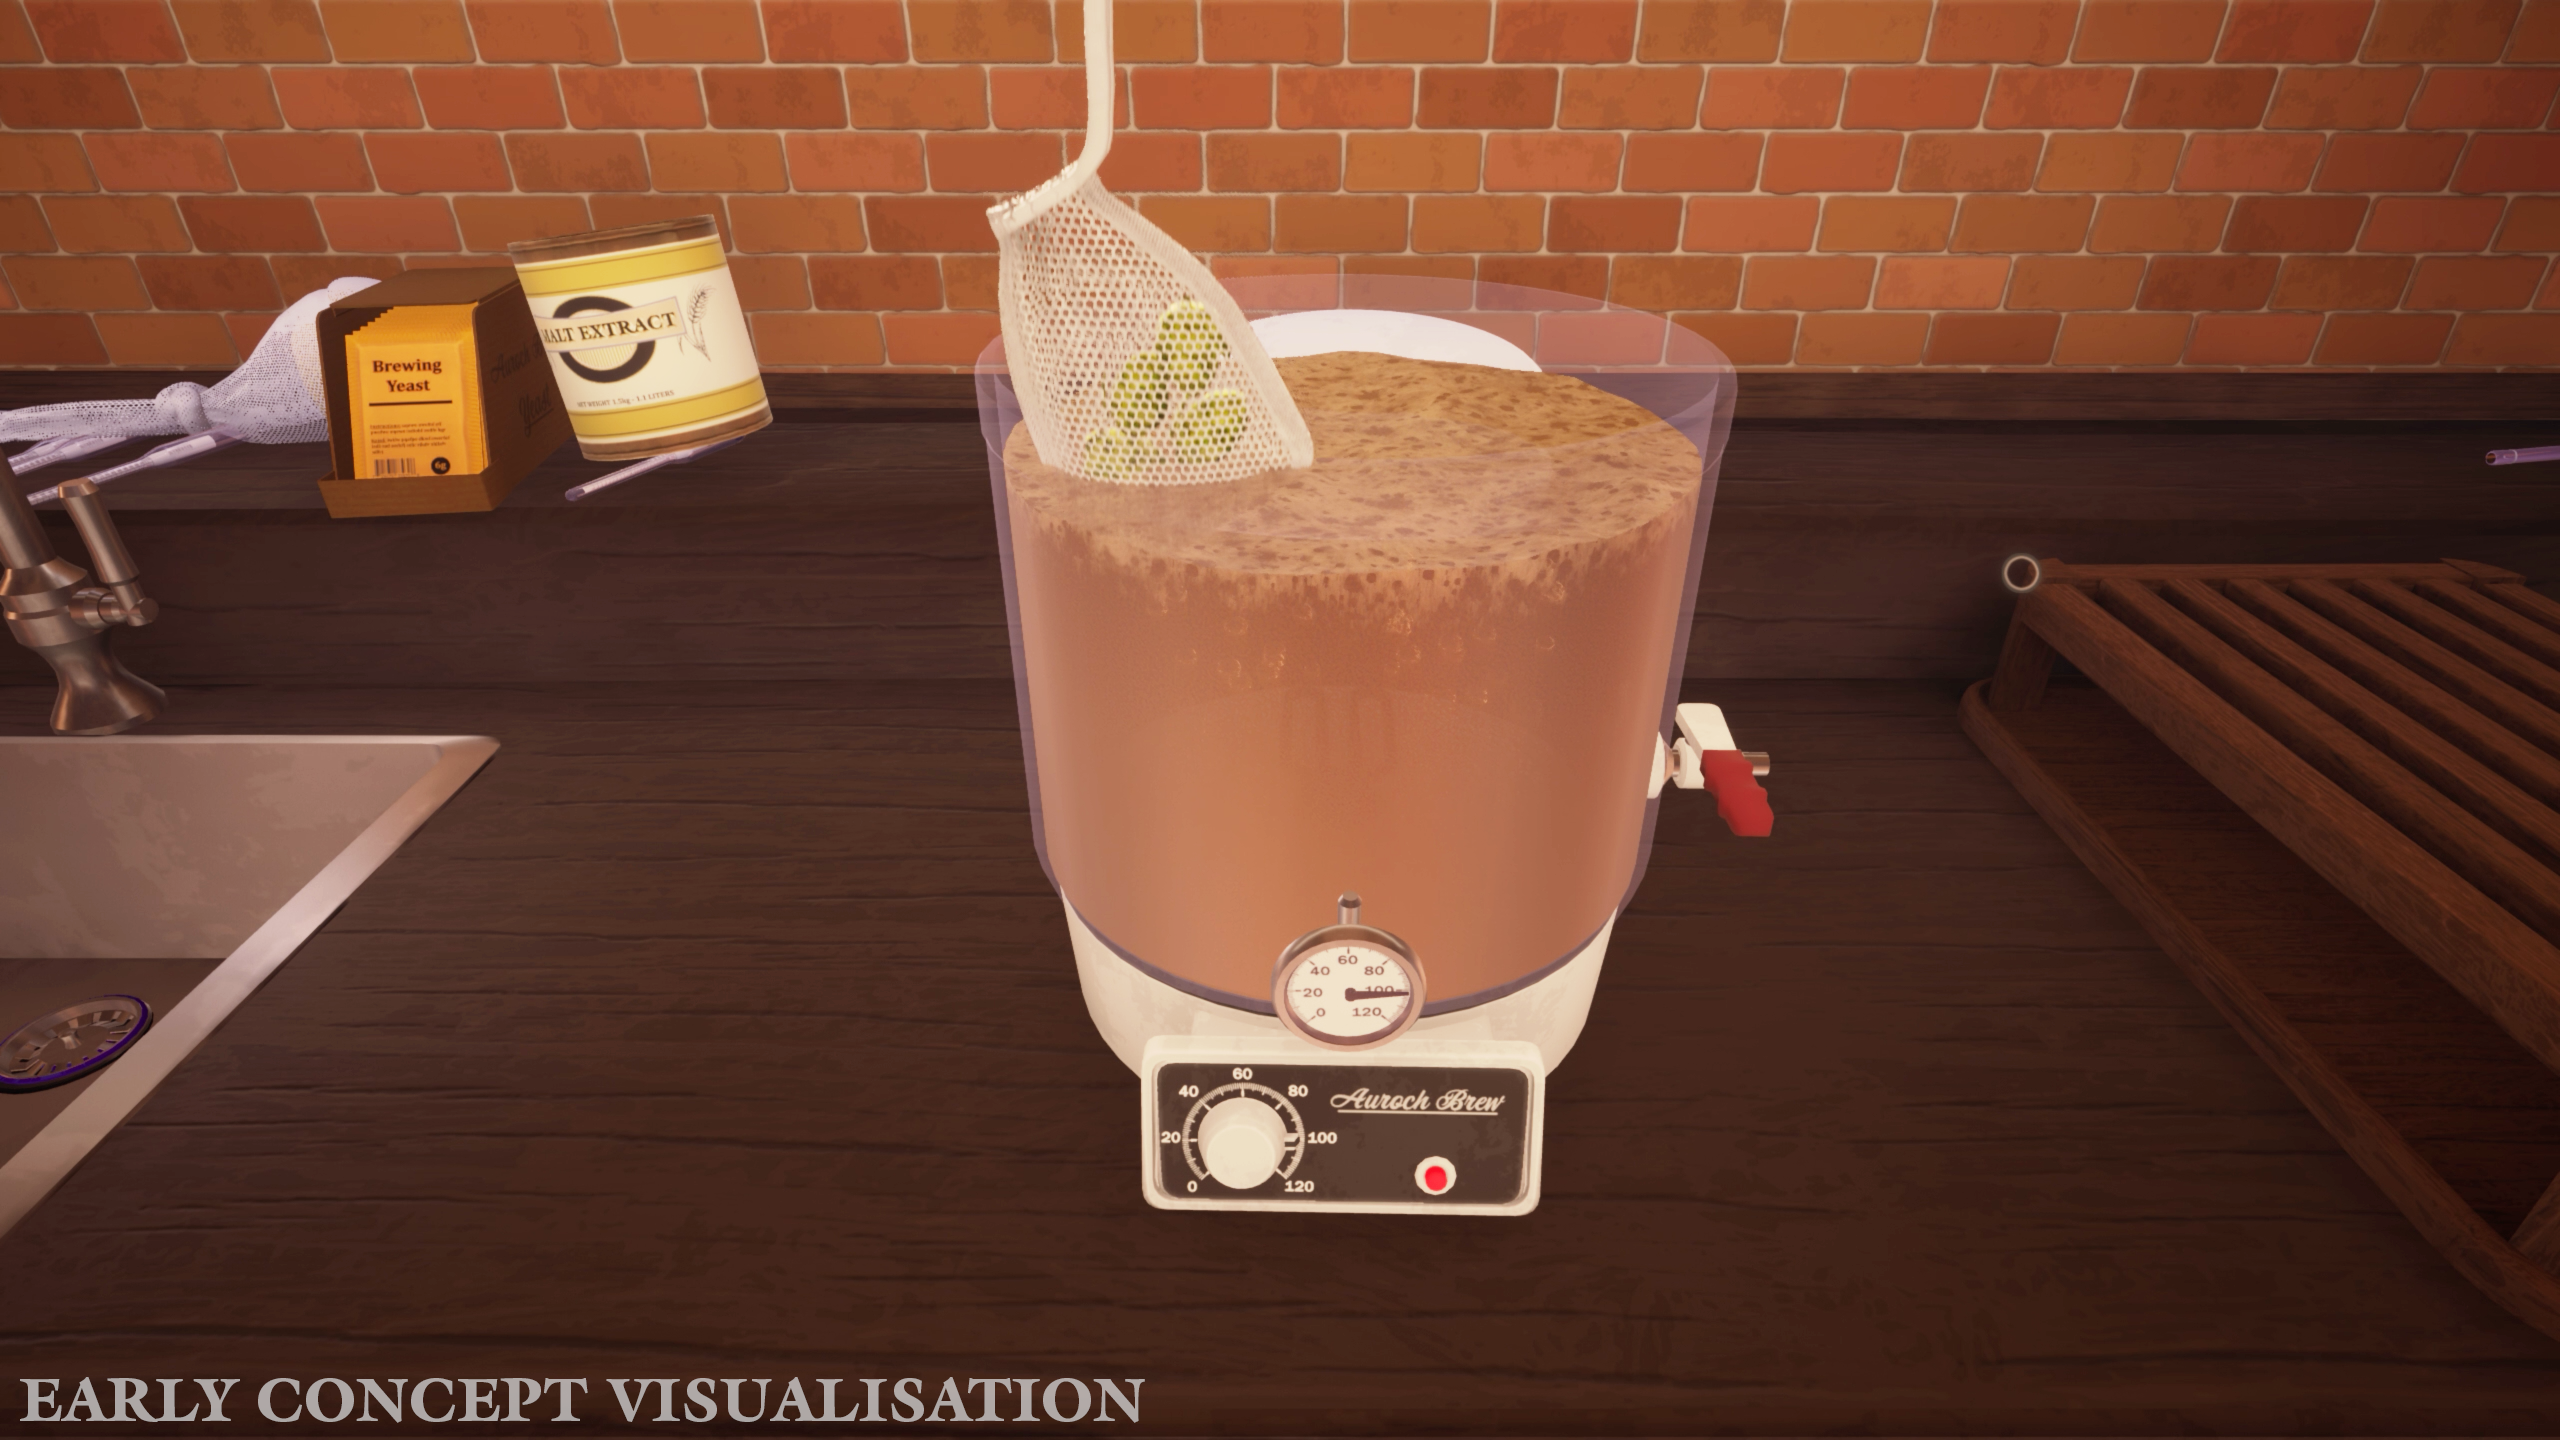 Brewmaster wants to turn you into a virtual real ale enthusiast